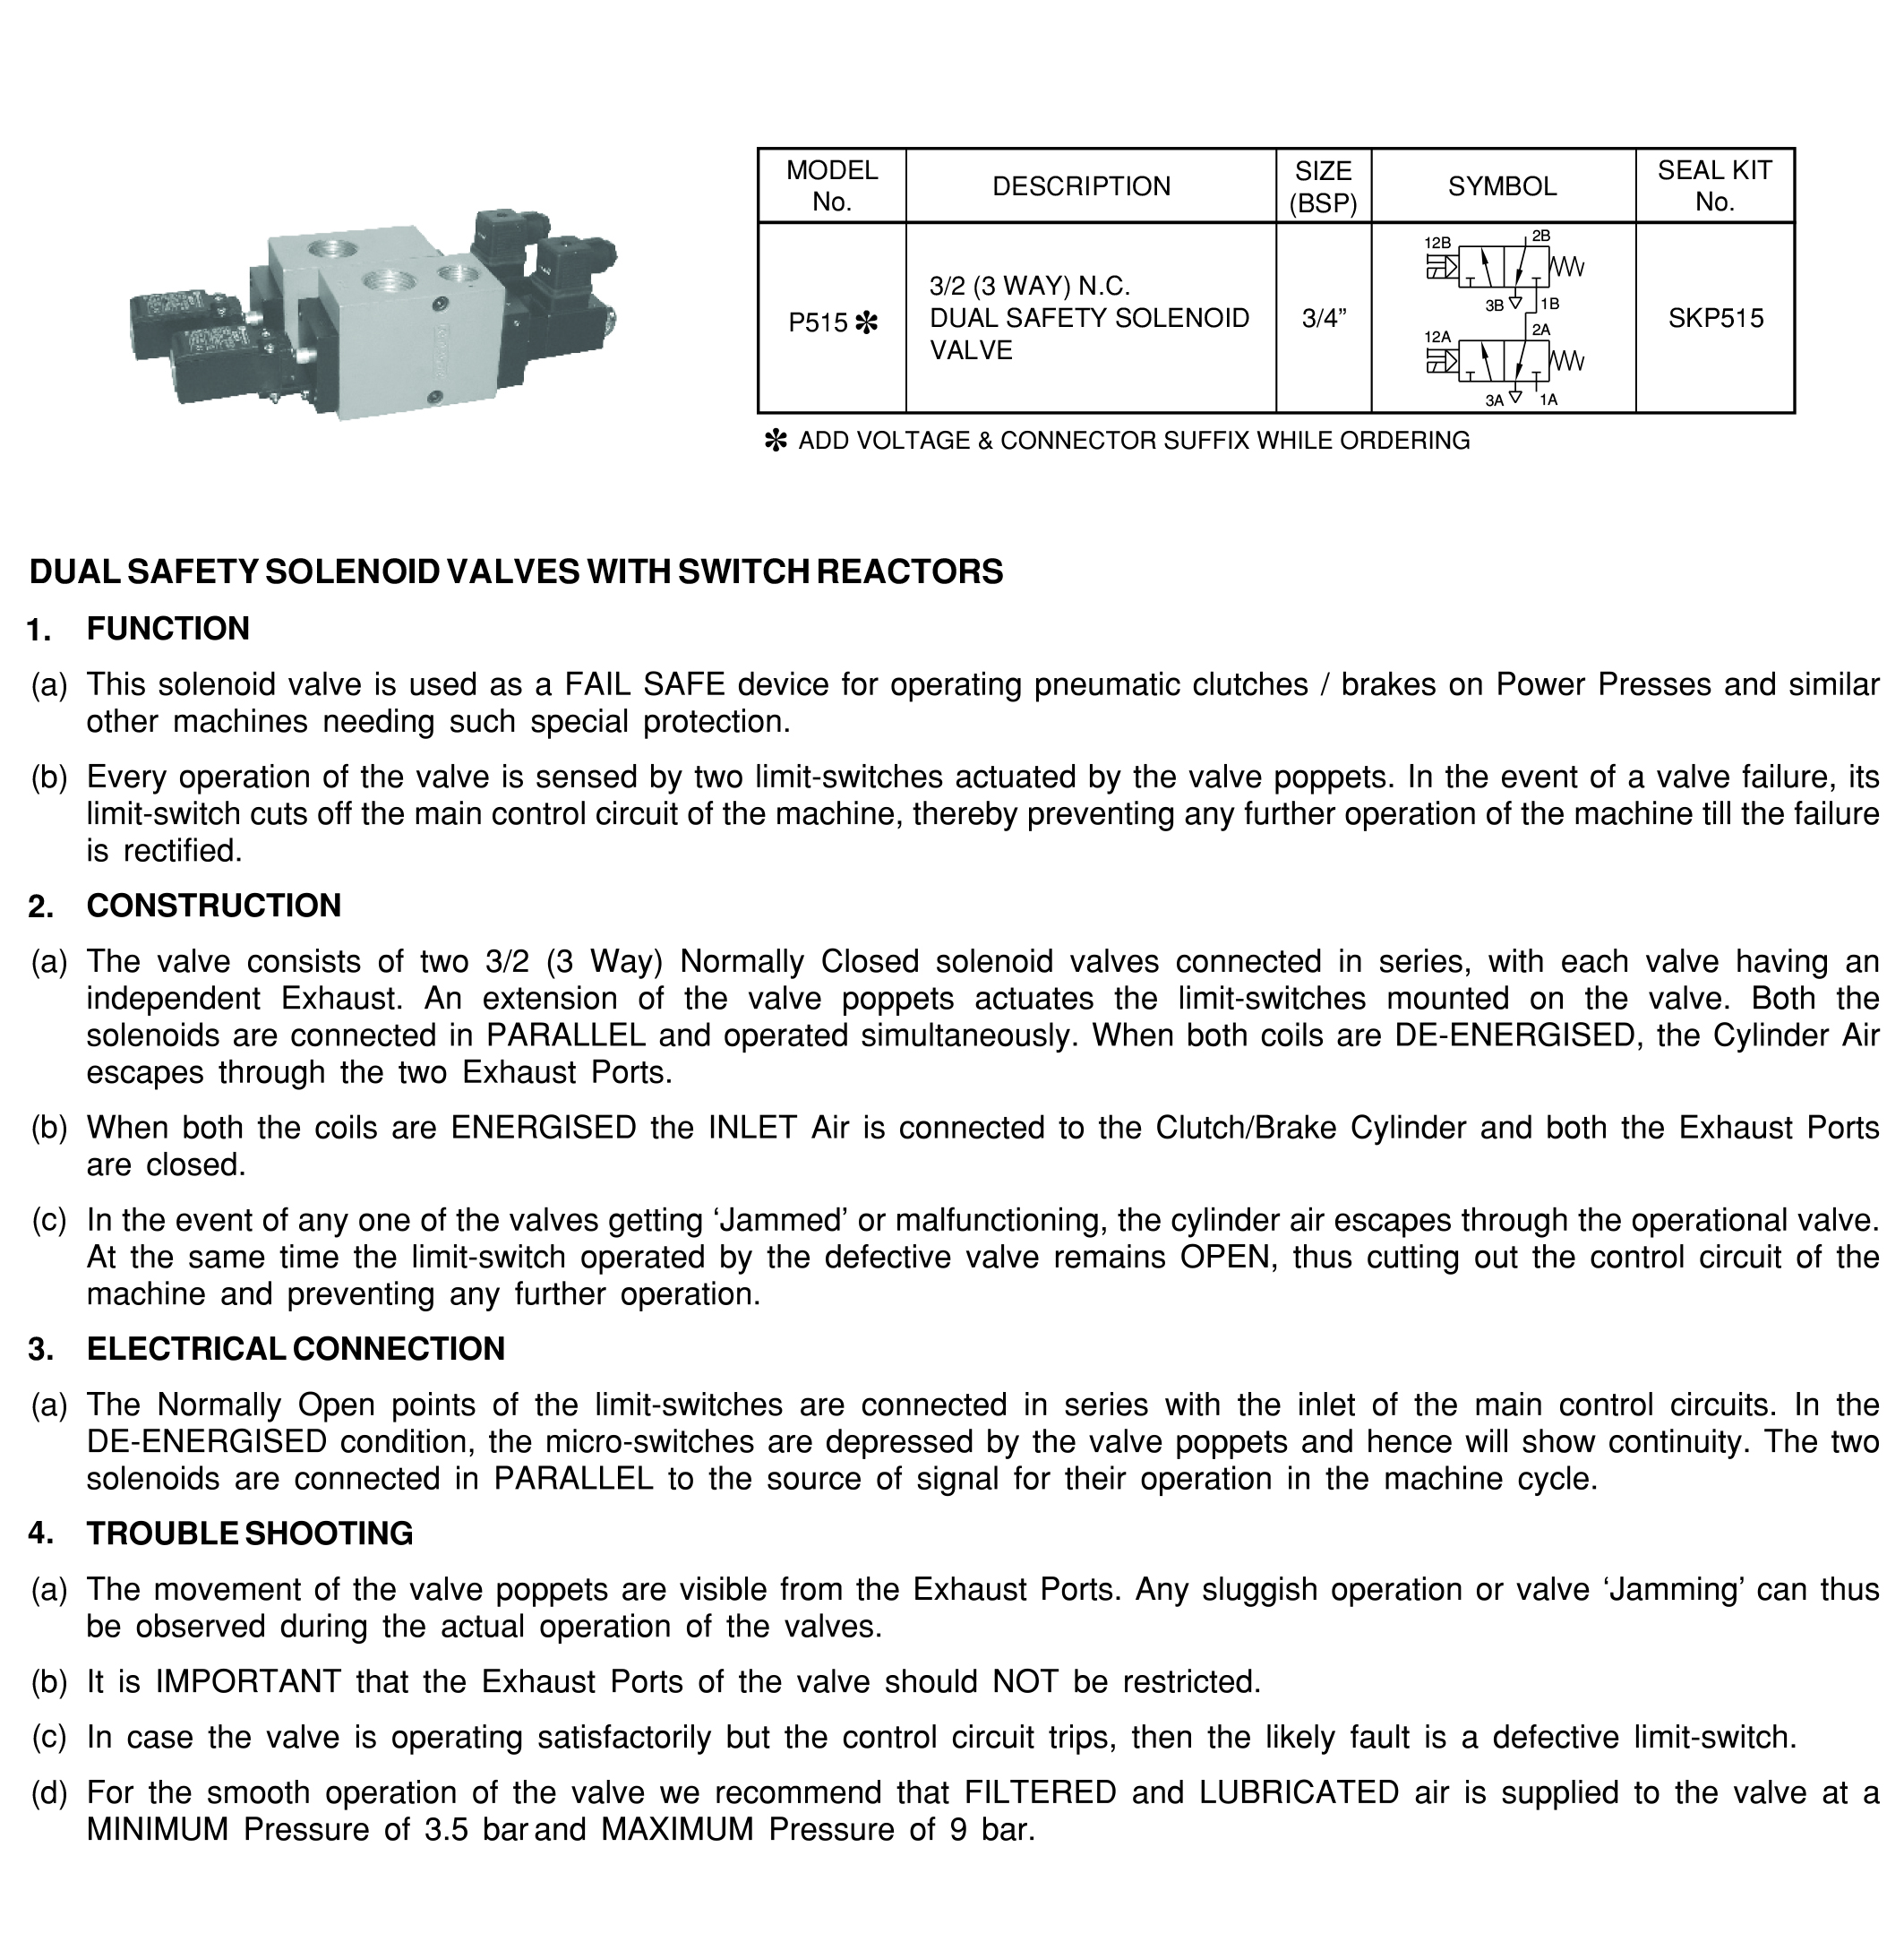 Dual Safety Solenoid Valve For Mechanical Power Press Mercury 3 Way Switch Operation